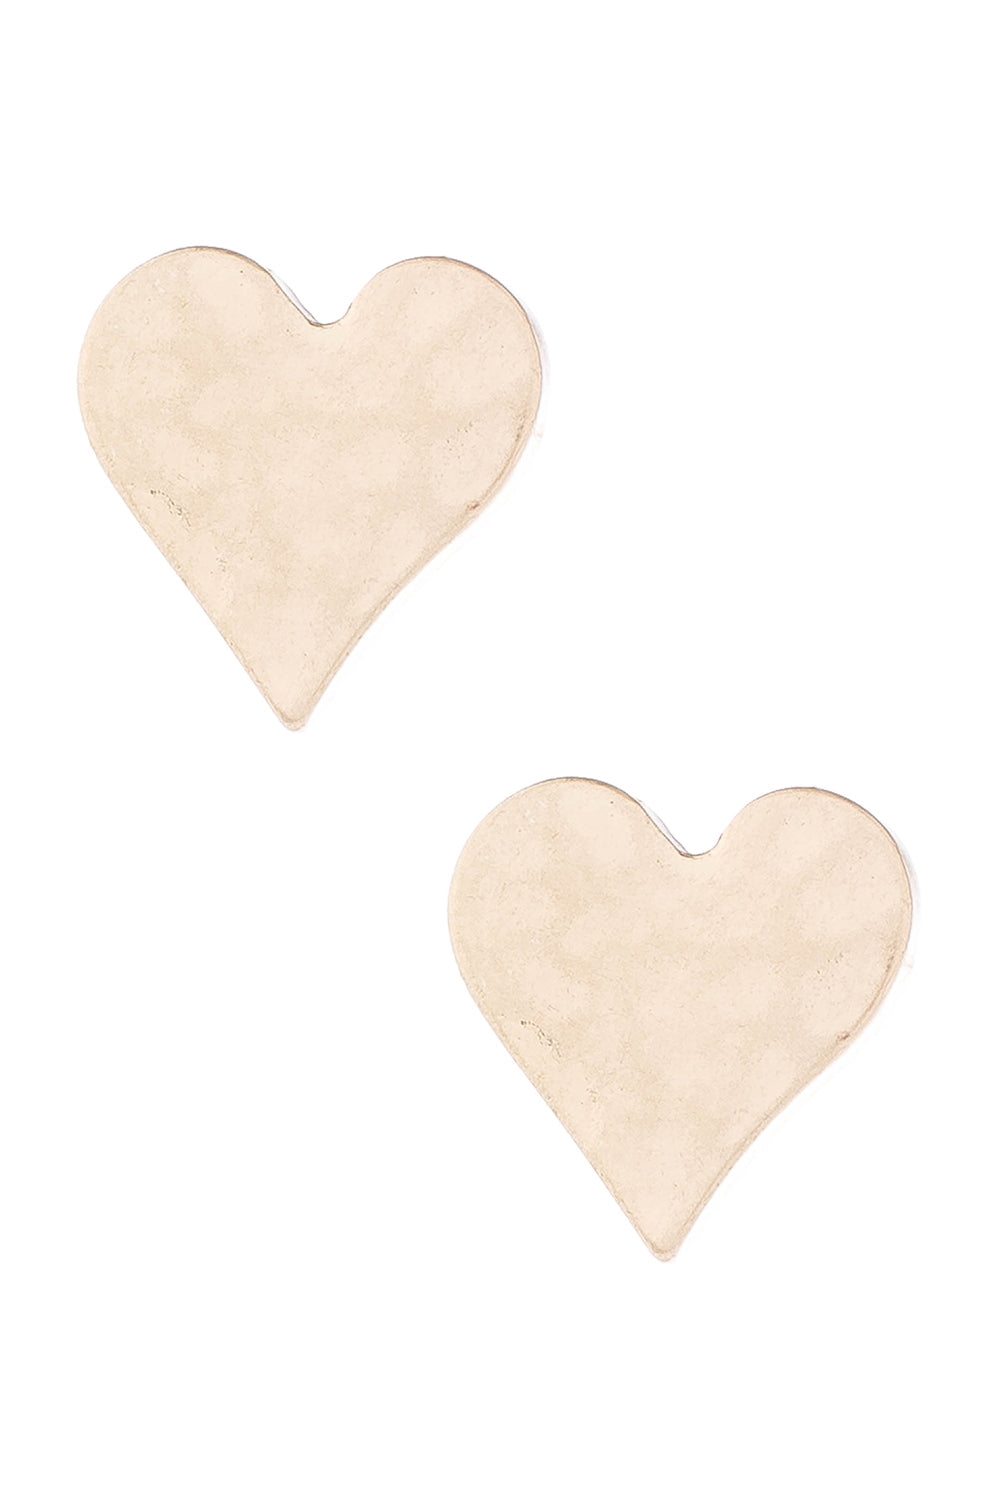 Type 1 Light Heart Earrings